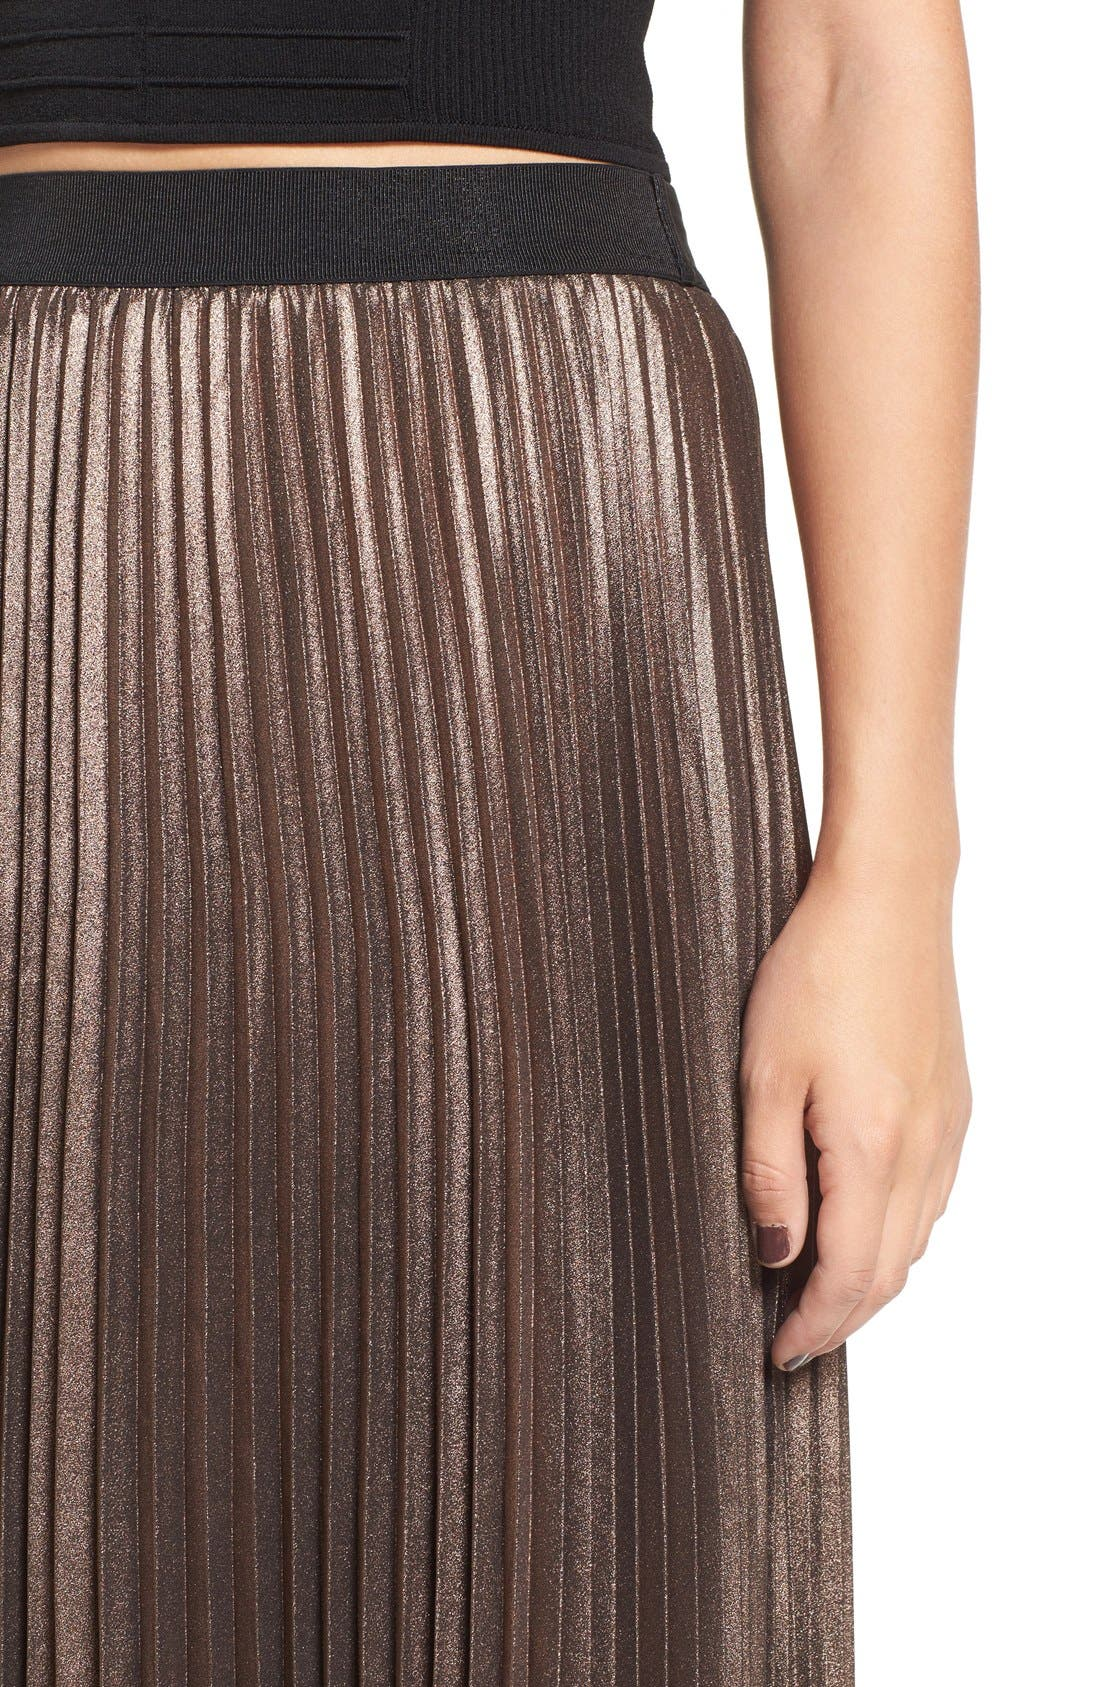 Metallic Pleated Midi Skirt,                             Alternate thumbnail 4, color,                             220